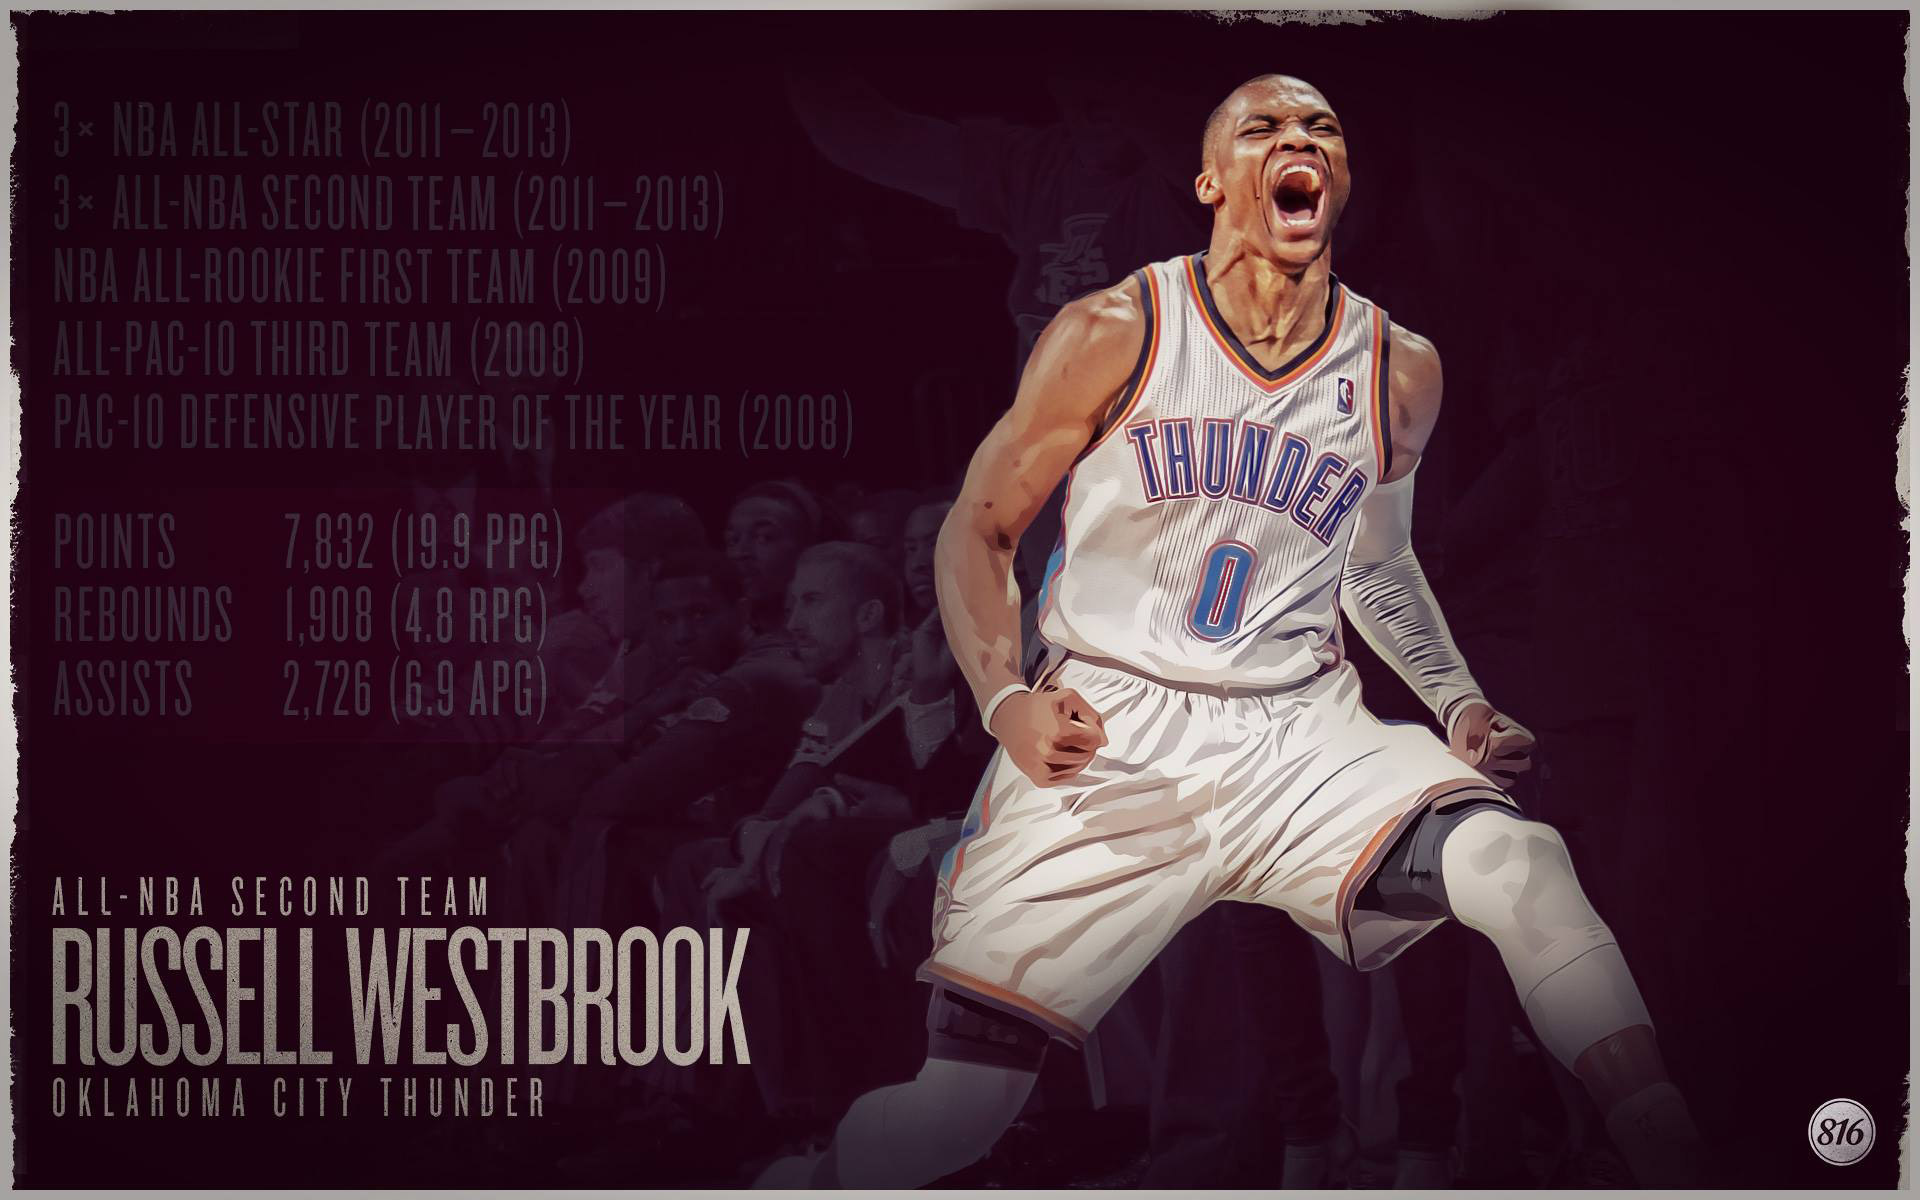 Russell Westbrook Wallpaper 30